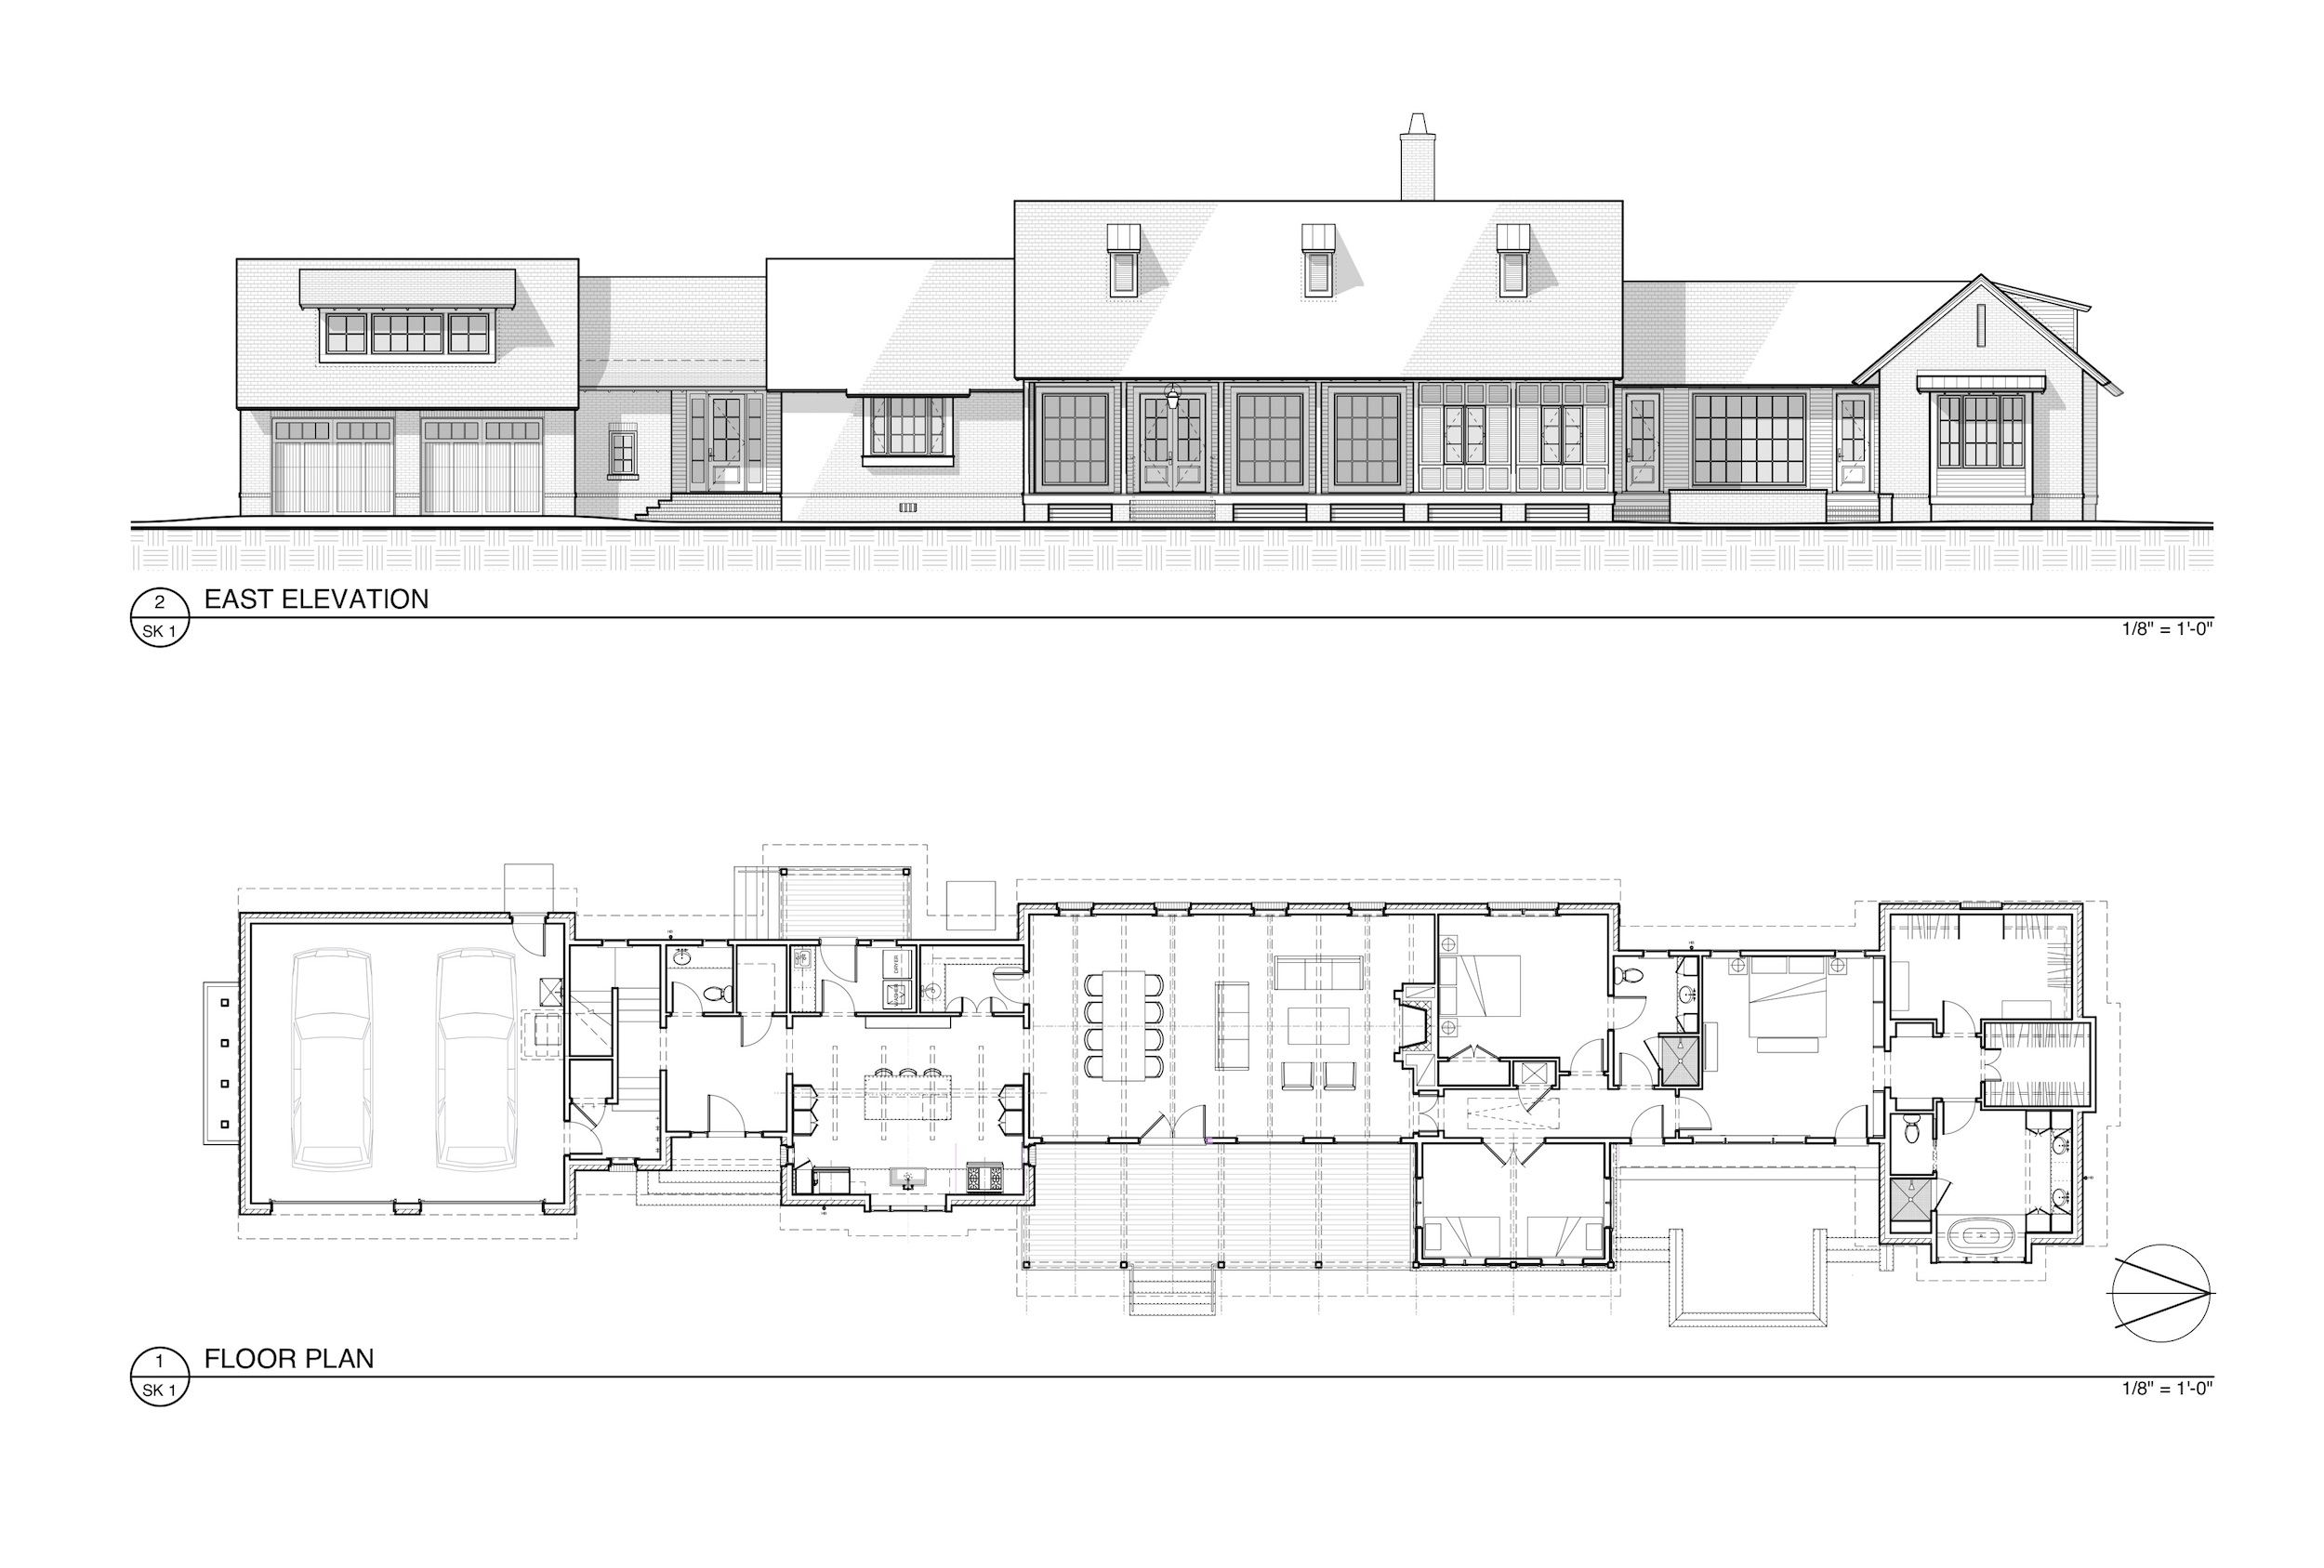 SK 1-Plan and Elevation_2500w.jpg